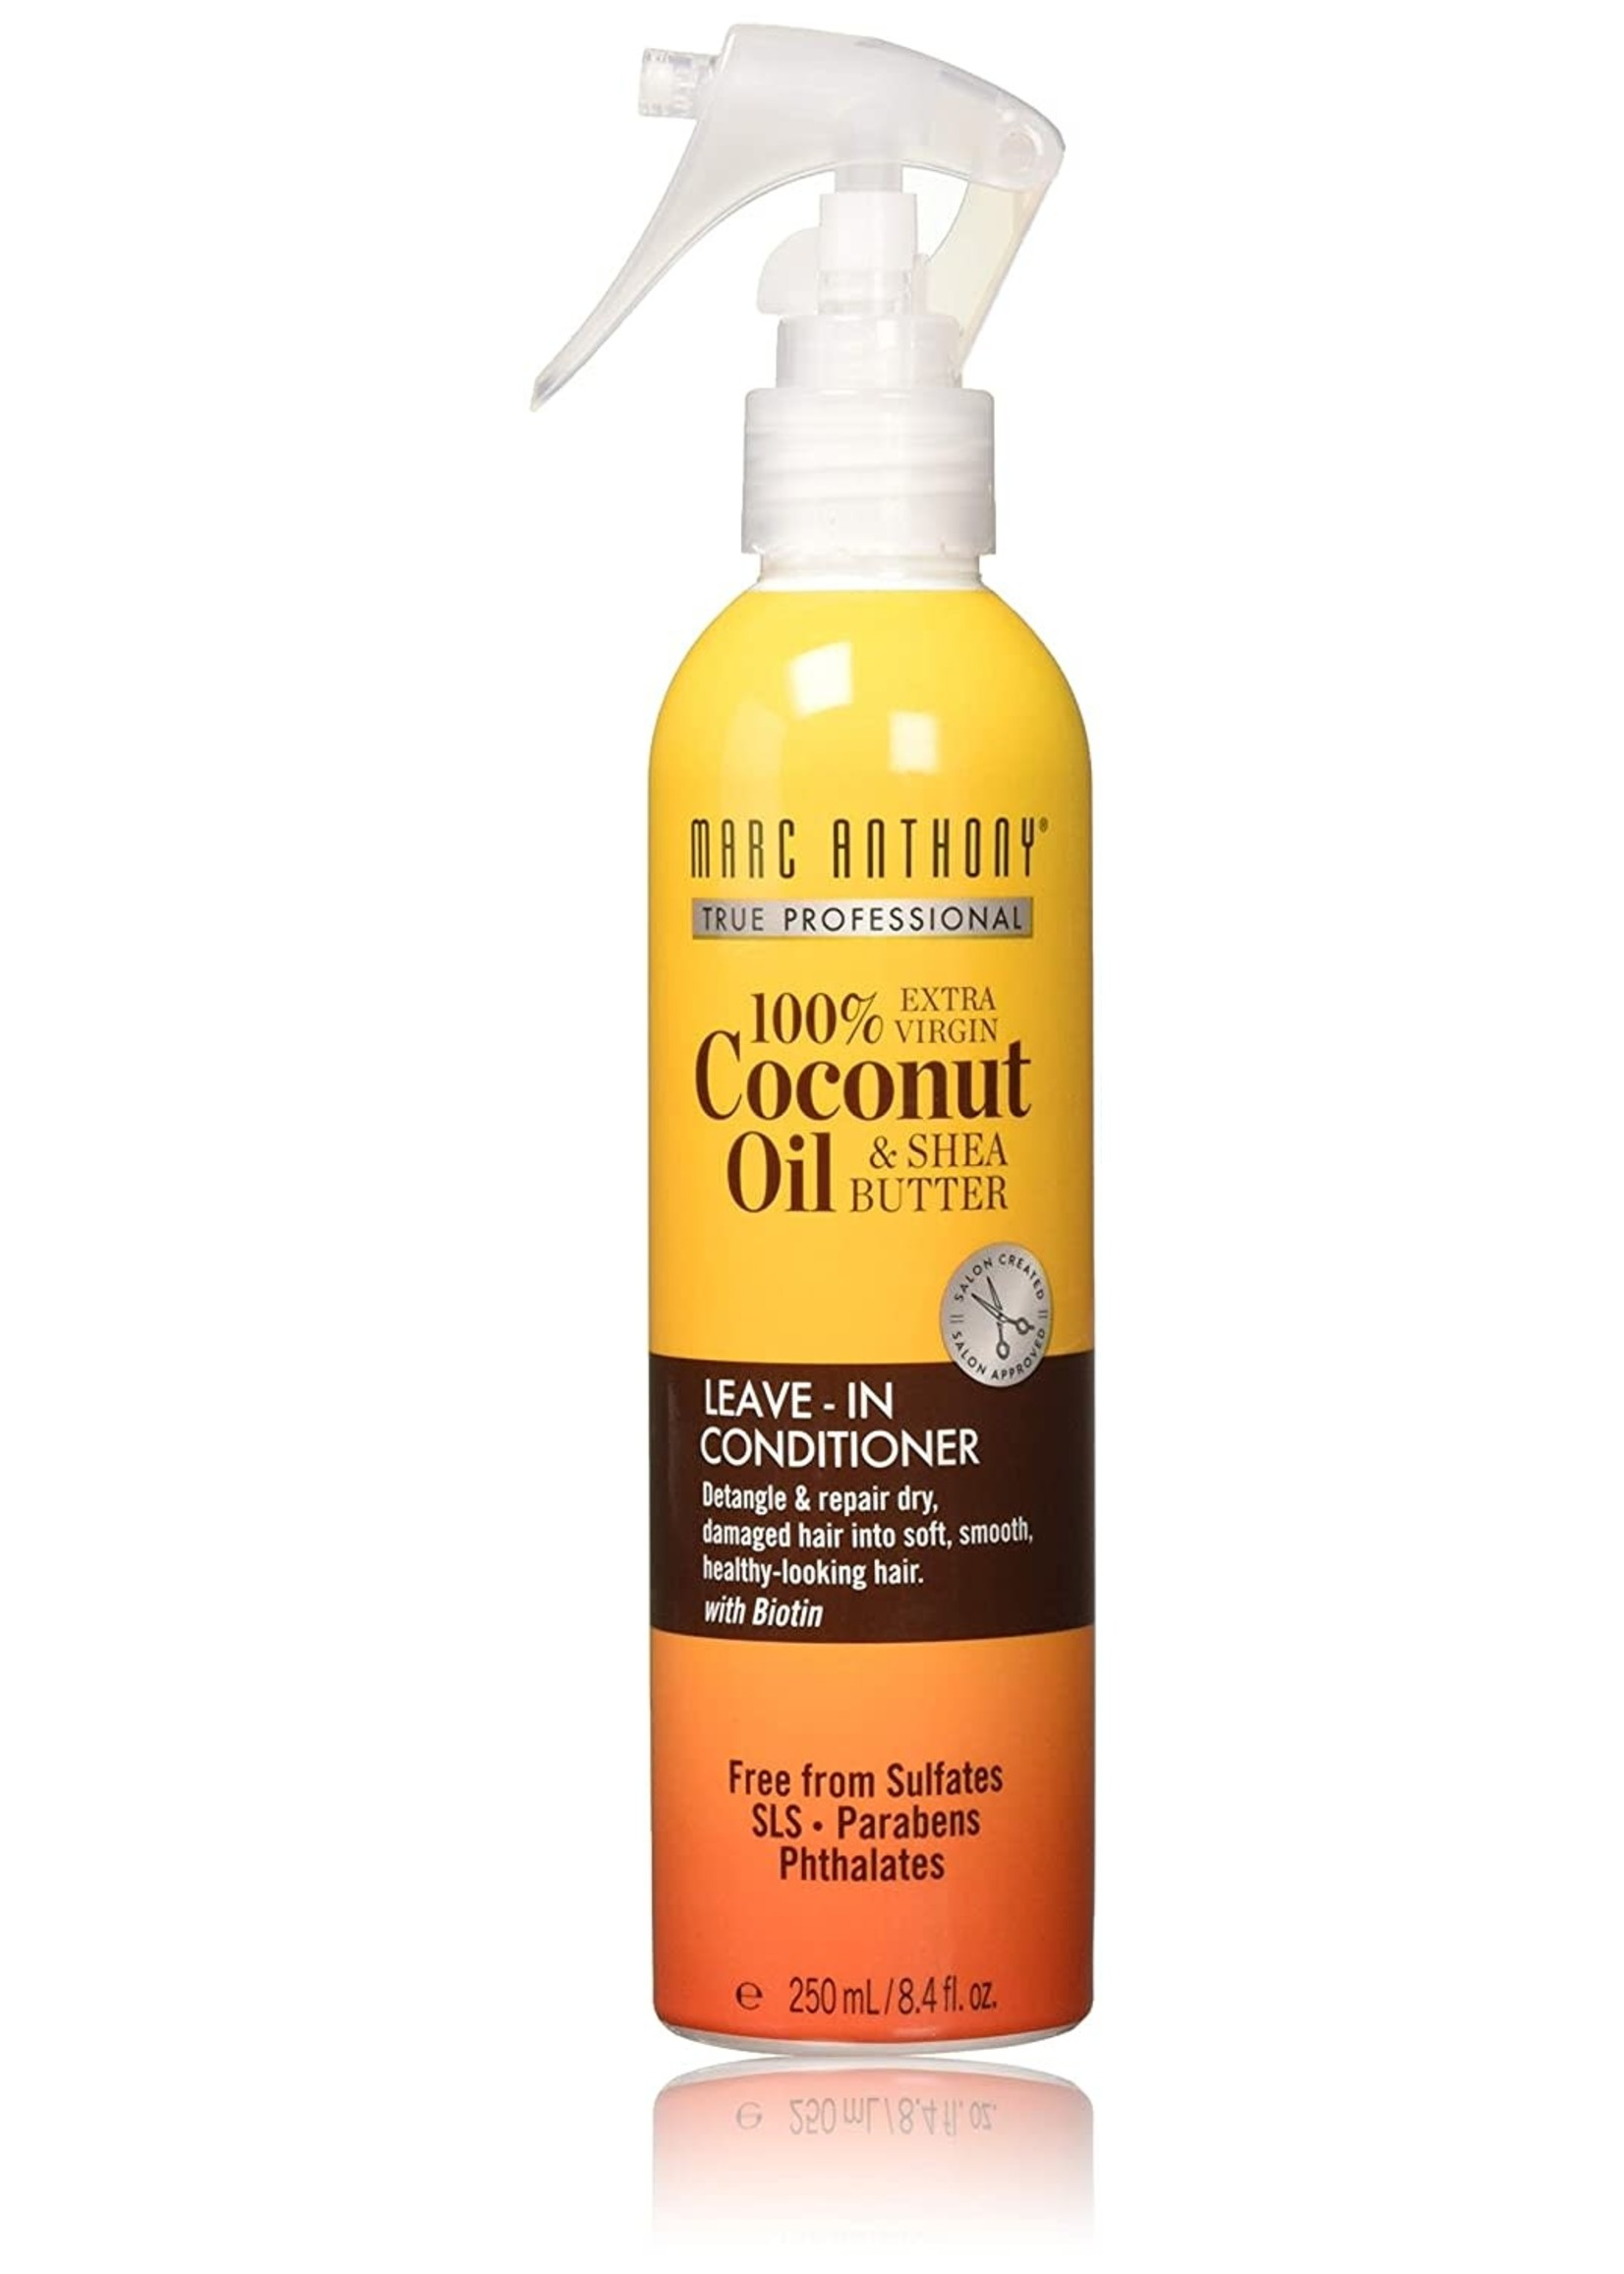 MARC ANTHONY 100% COCONUT OIL&SHEA LEAVE IN